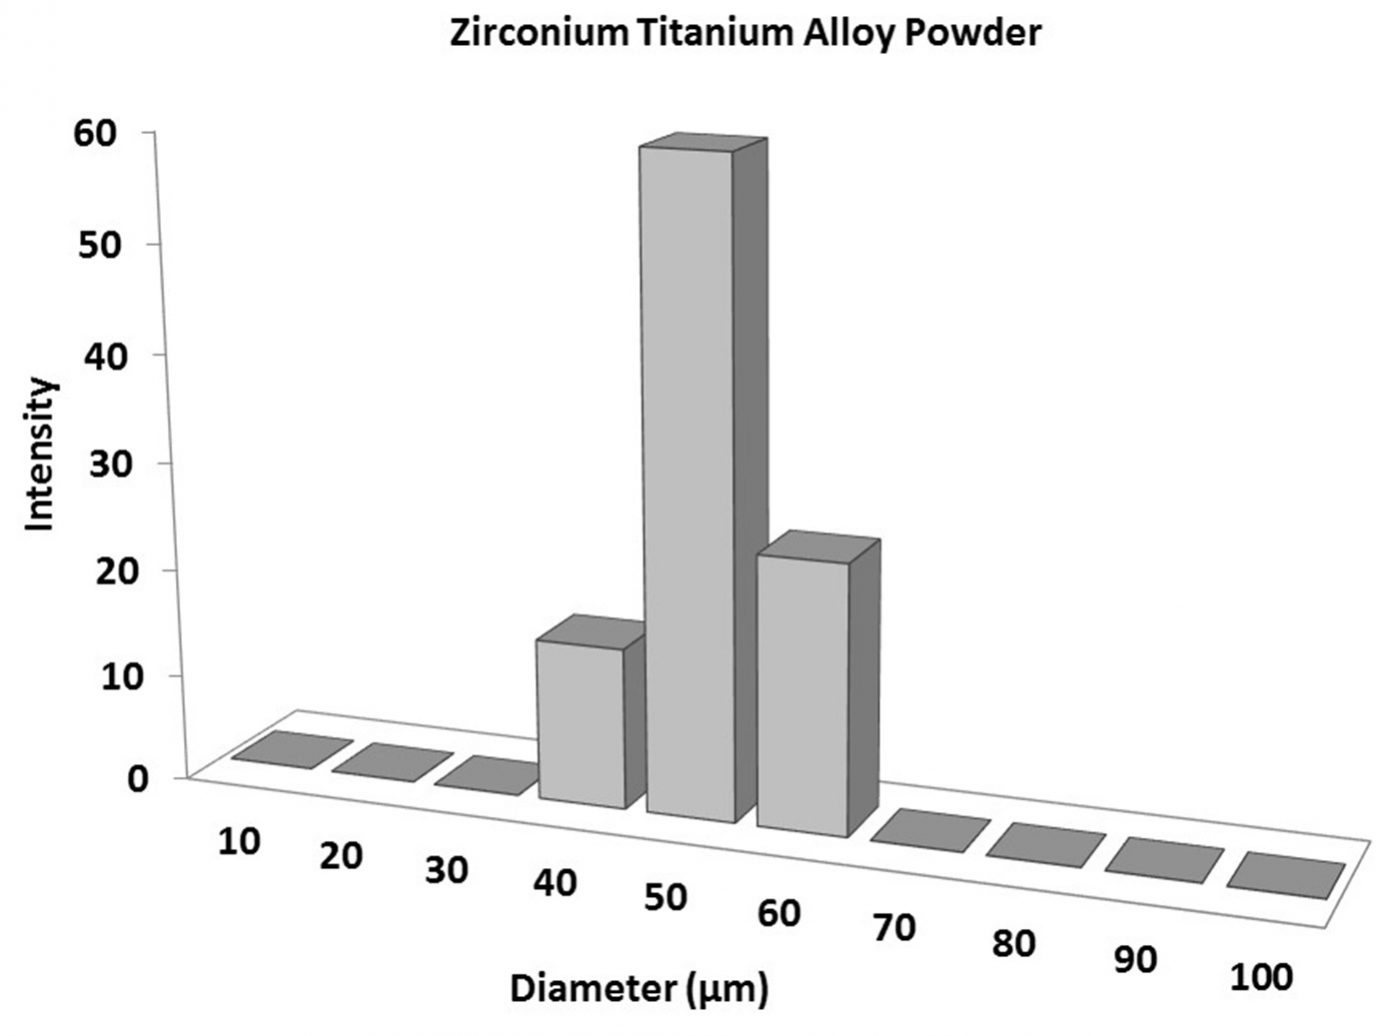 Particles Size Analysis – Zirconium Titanium Alloy Powder